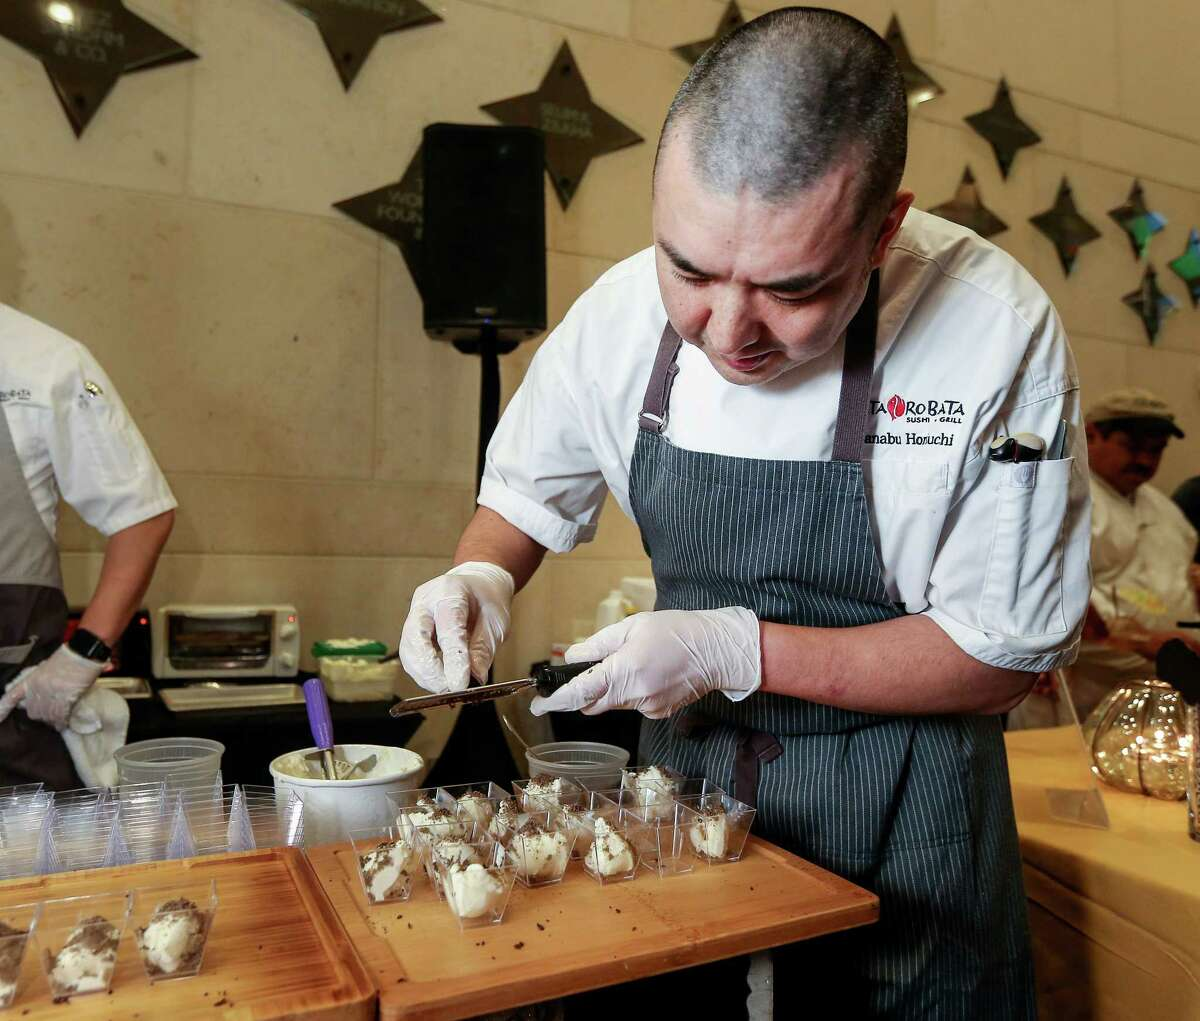 Manabu Horiuchi, the executive chef from Kata Robata, prepares honey truffle ice cream at Truffle Masters 2017, at the Hobby Center. Horiuchi won first place; he also created an open face truffle banh mi sandwich.